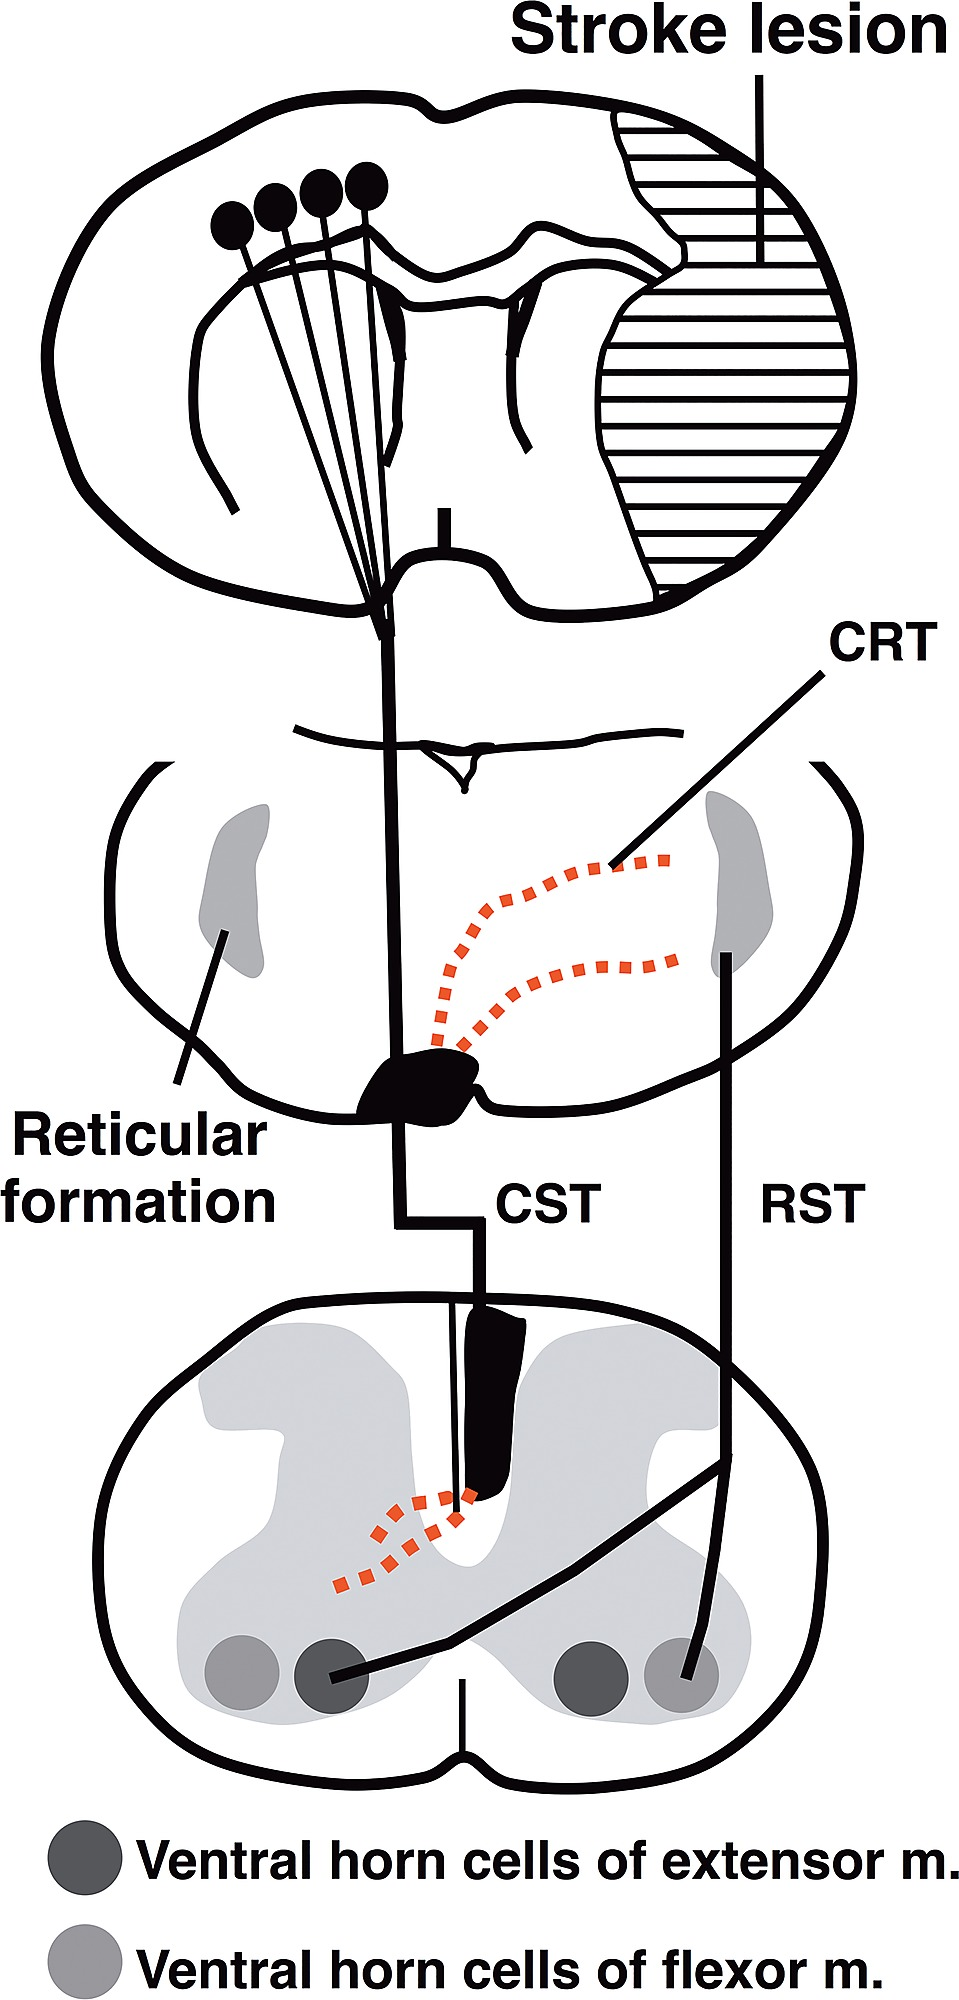 hight resolution of schematic diagram showing enhancement of the midline crossing fibers by lotus overexpression after mcao